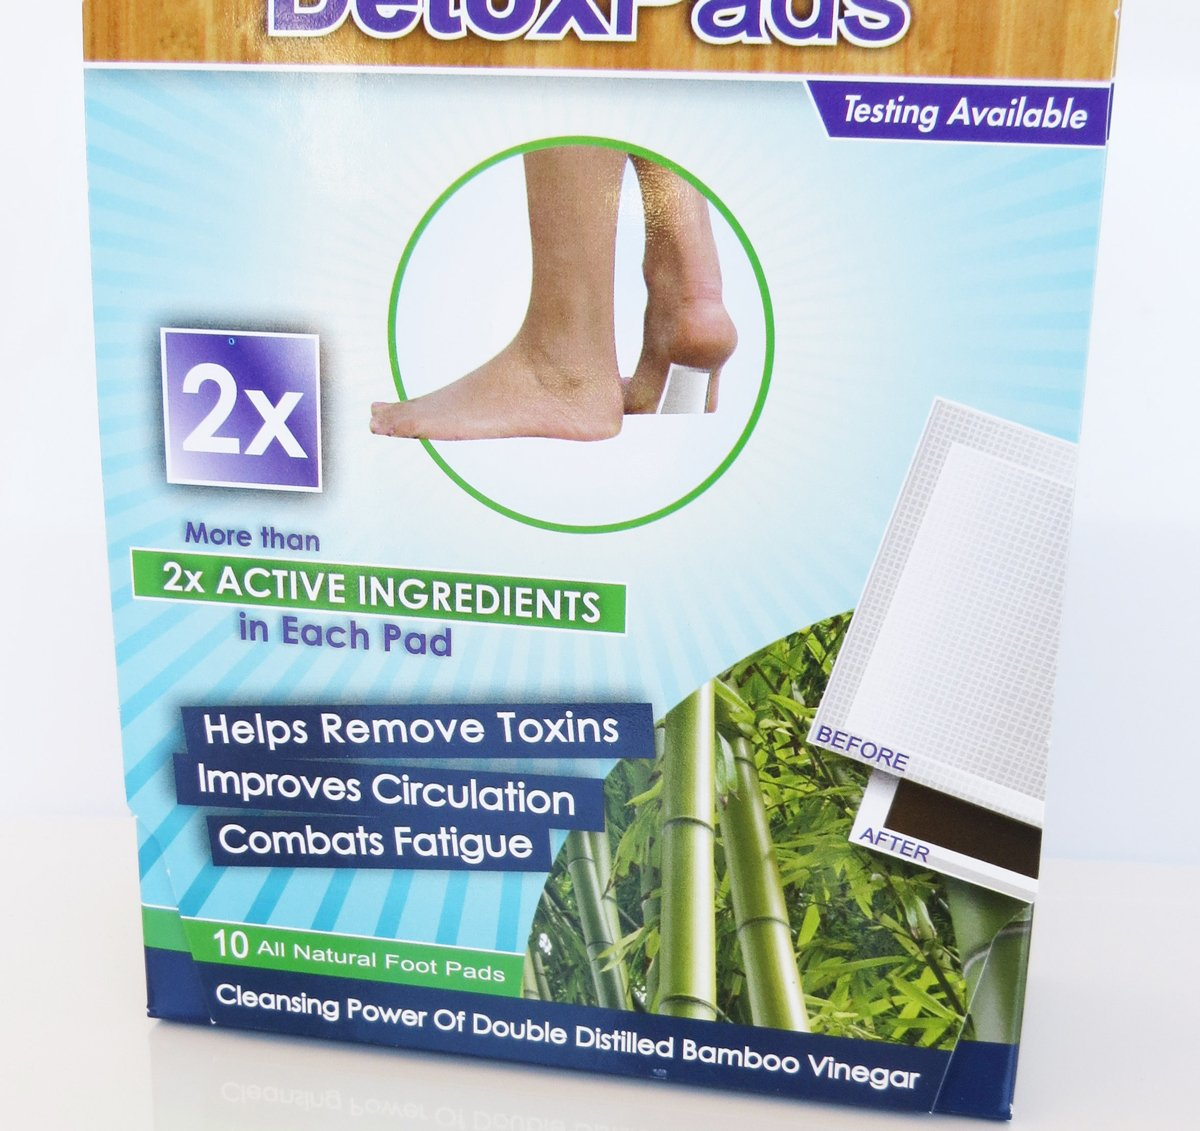 BodyPure2x Herbal Foot Pads to Remove Toxins